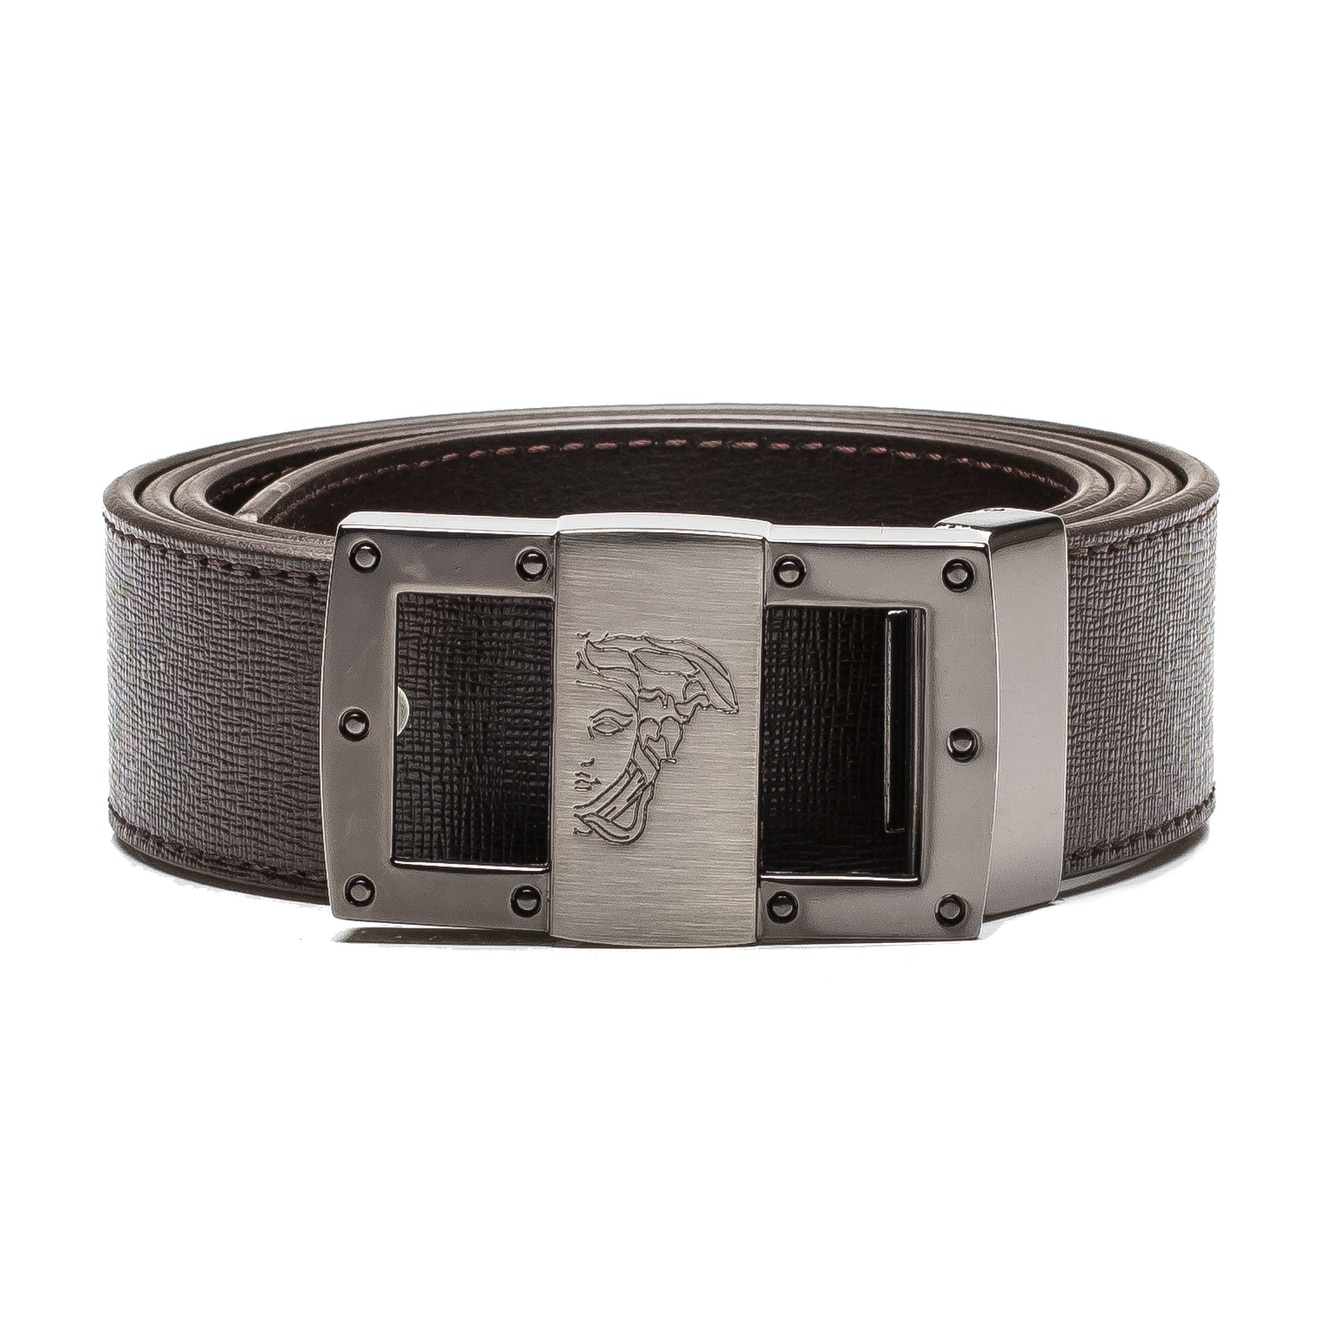 225d32e920 Shop Versace Collection Men's Medusa Steel Buckle Saffiano Leather Belt  Brown - Free Shipping Today - Overstock - 21236761